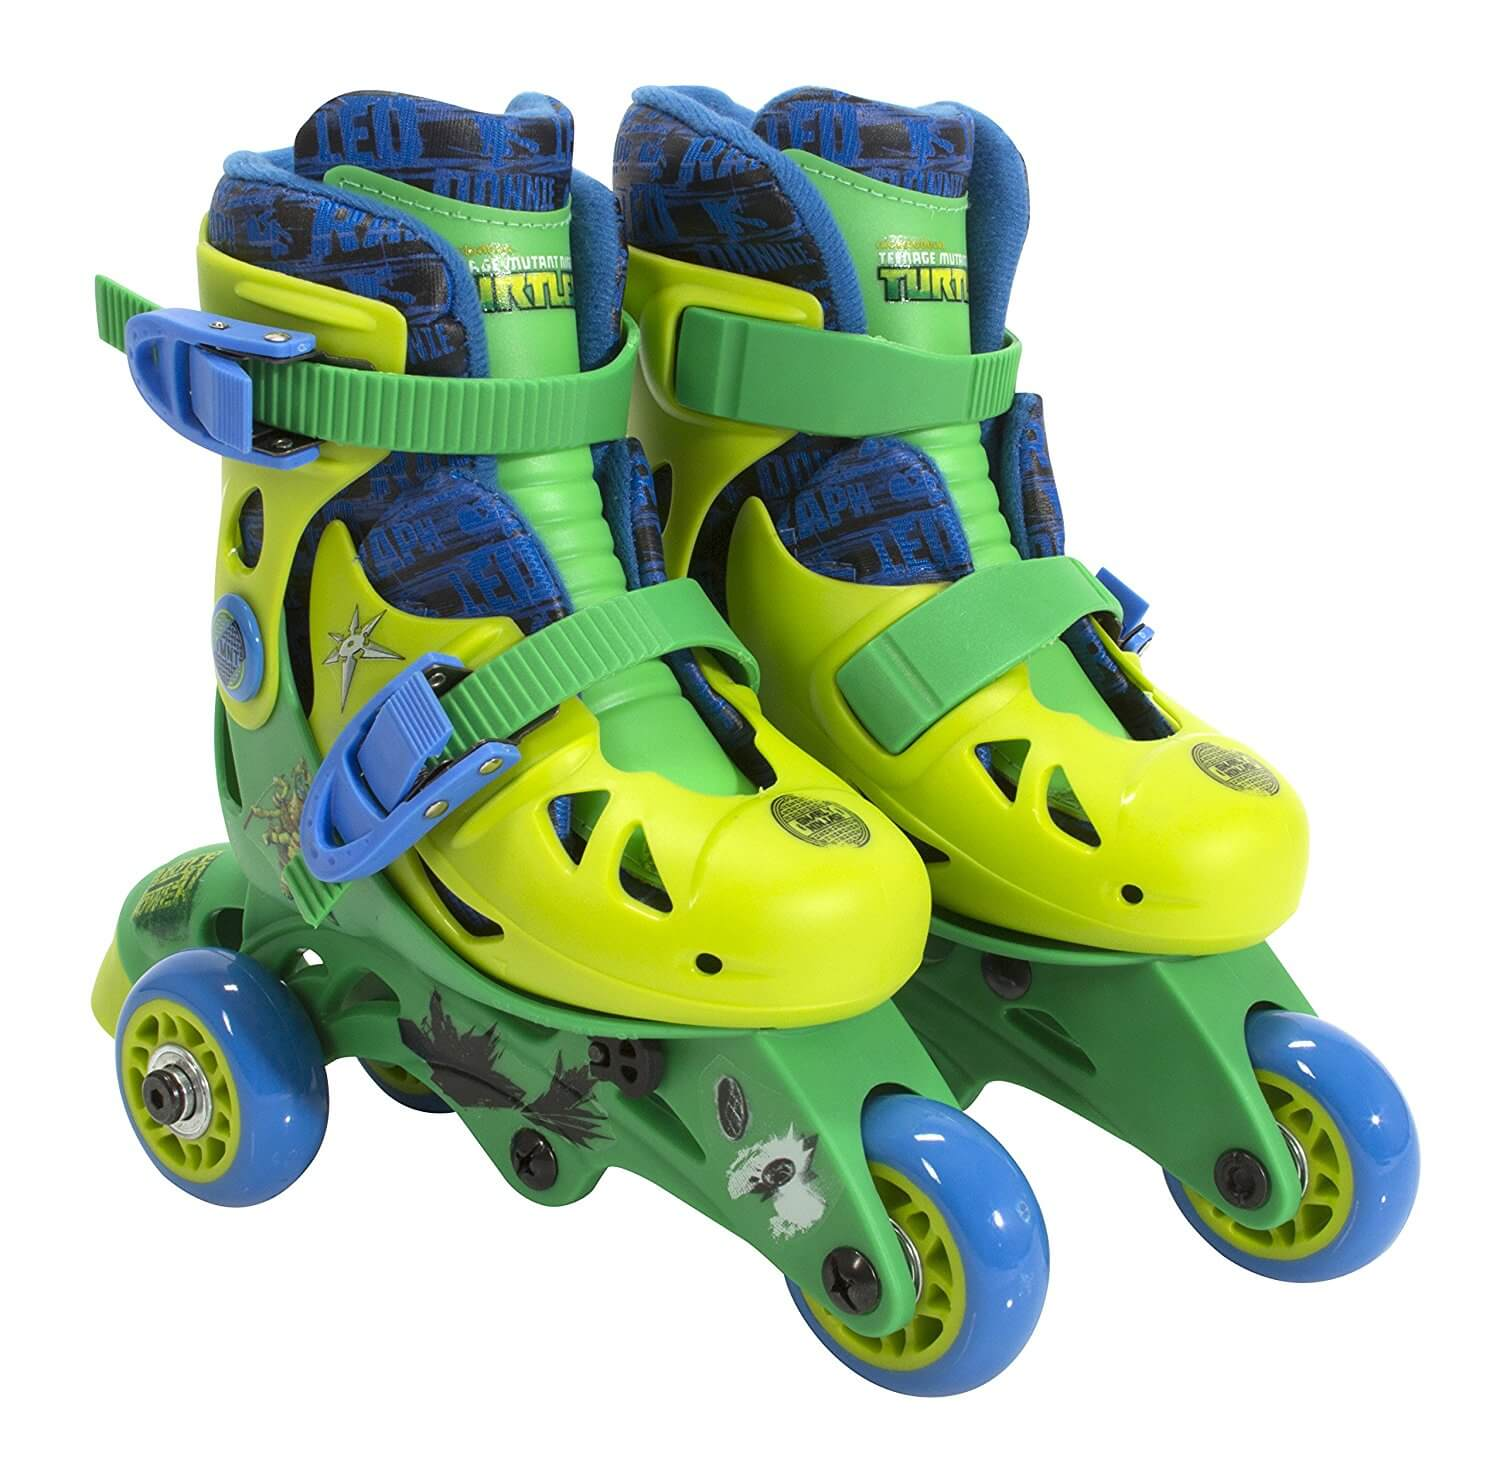 Ninja Turtle Skates - Best Roller Skates For Kids King Skate